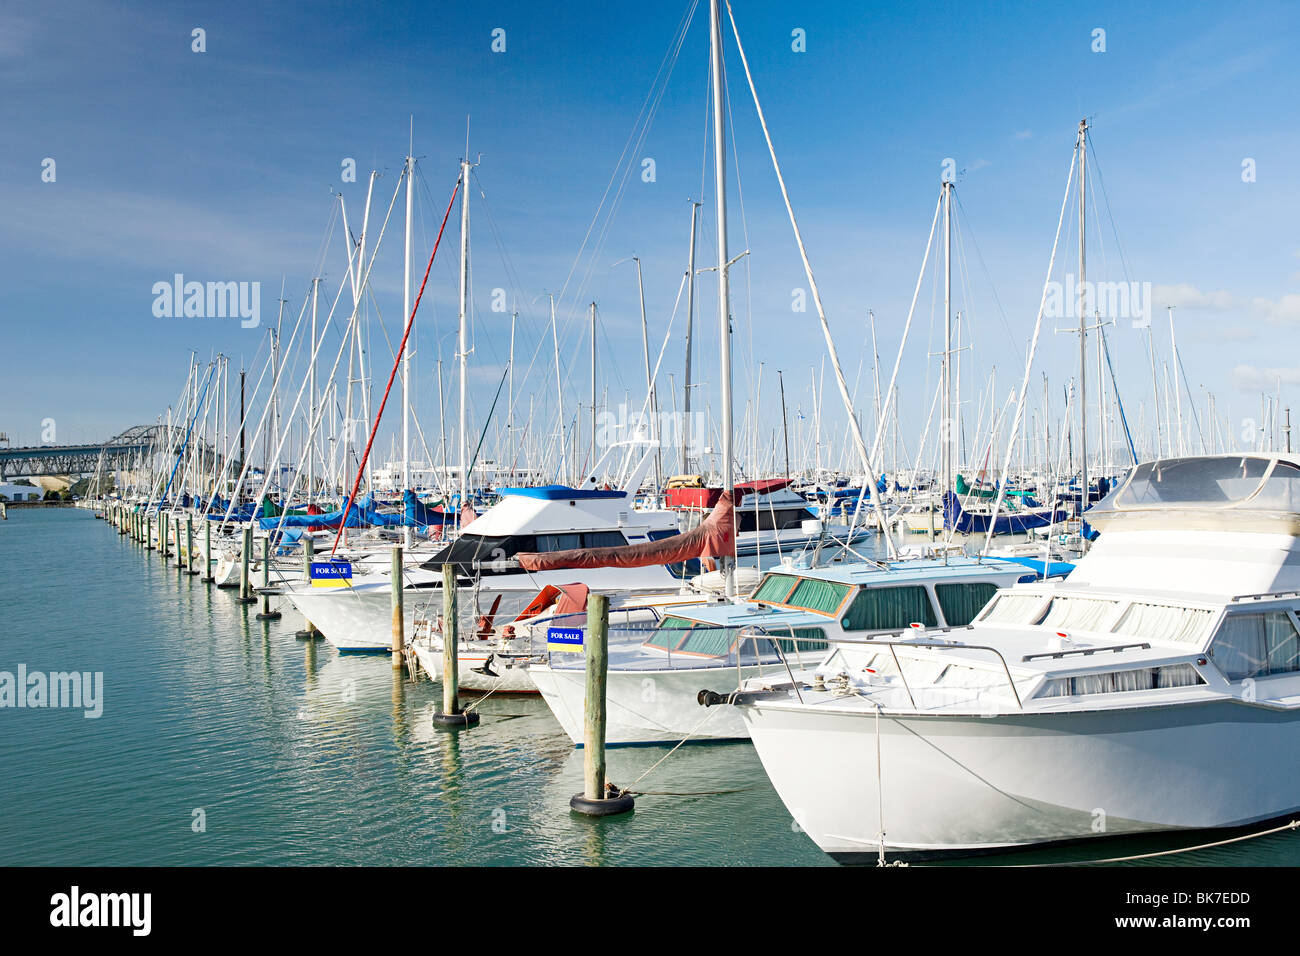 Westhaven Marina, Auckland - Stock Image